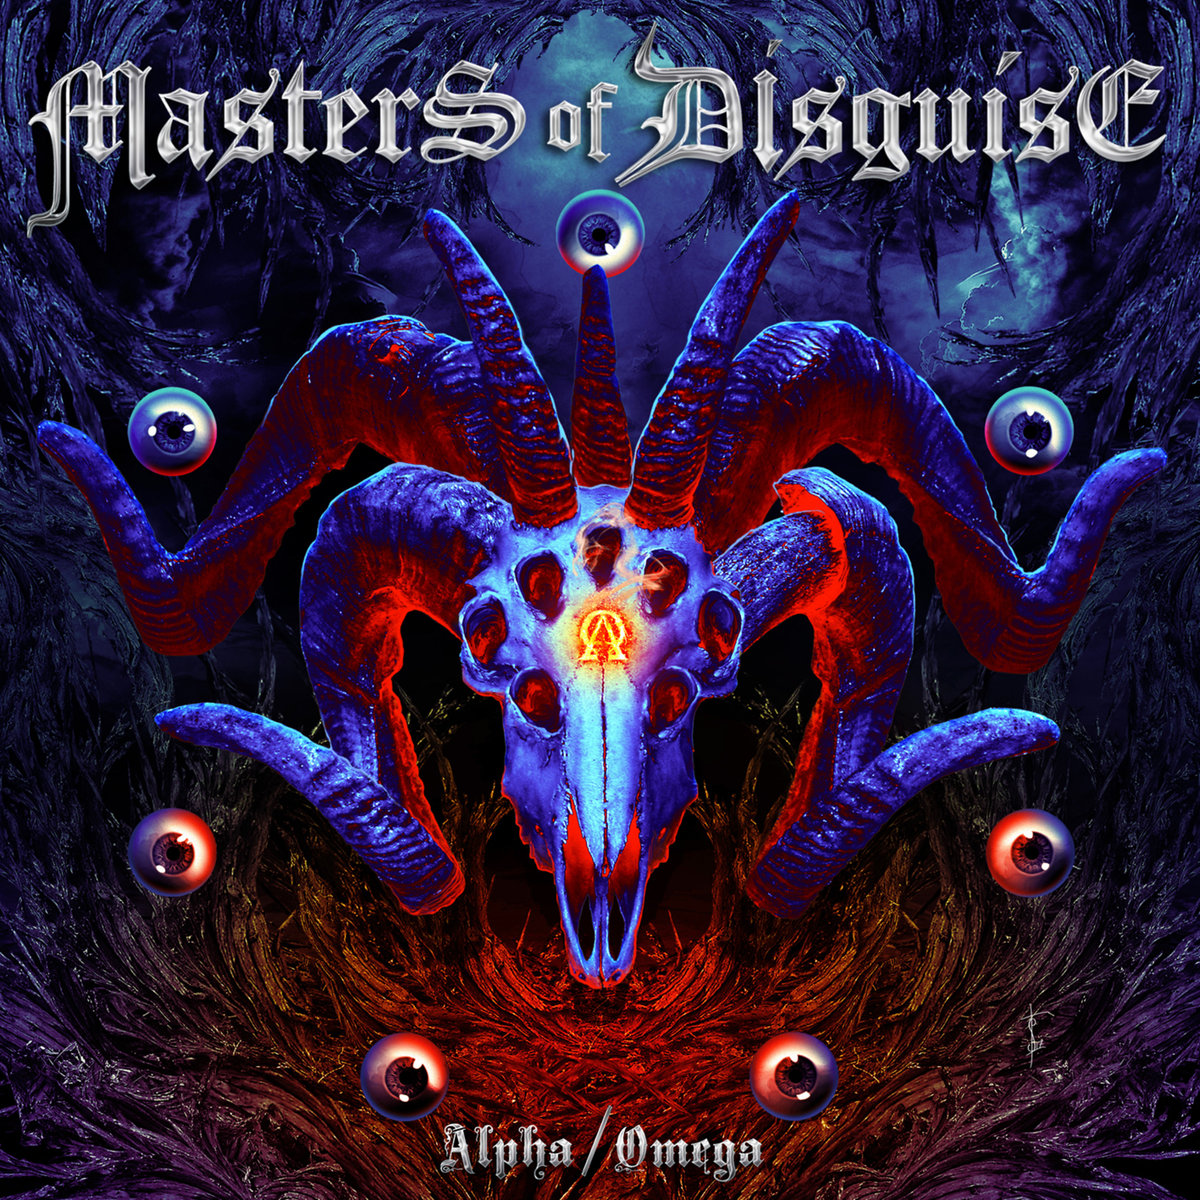 masters of disguise alpha/omega album cover